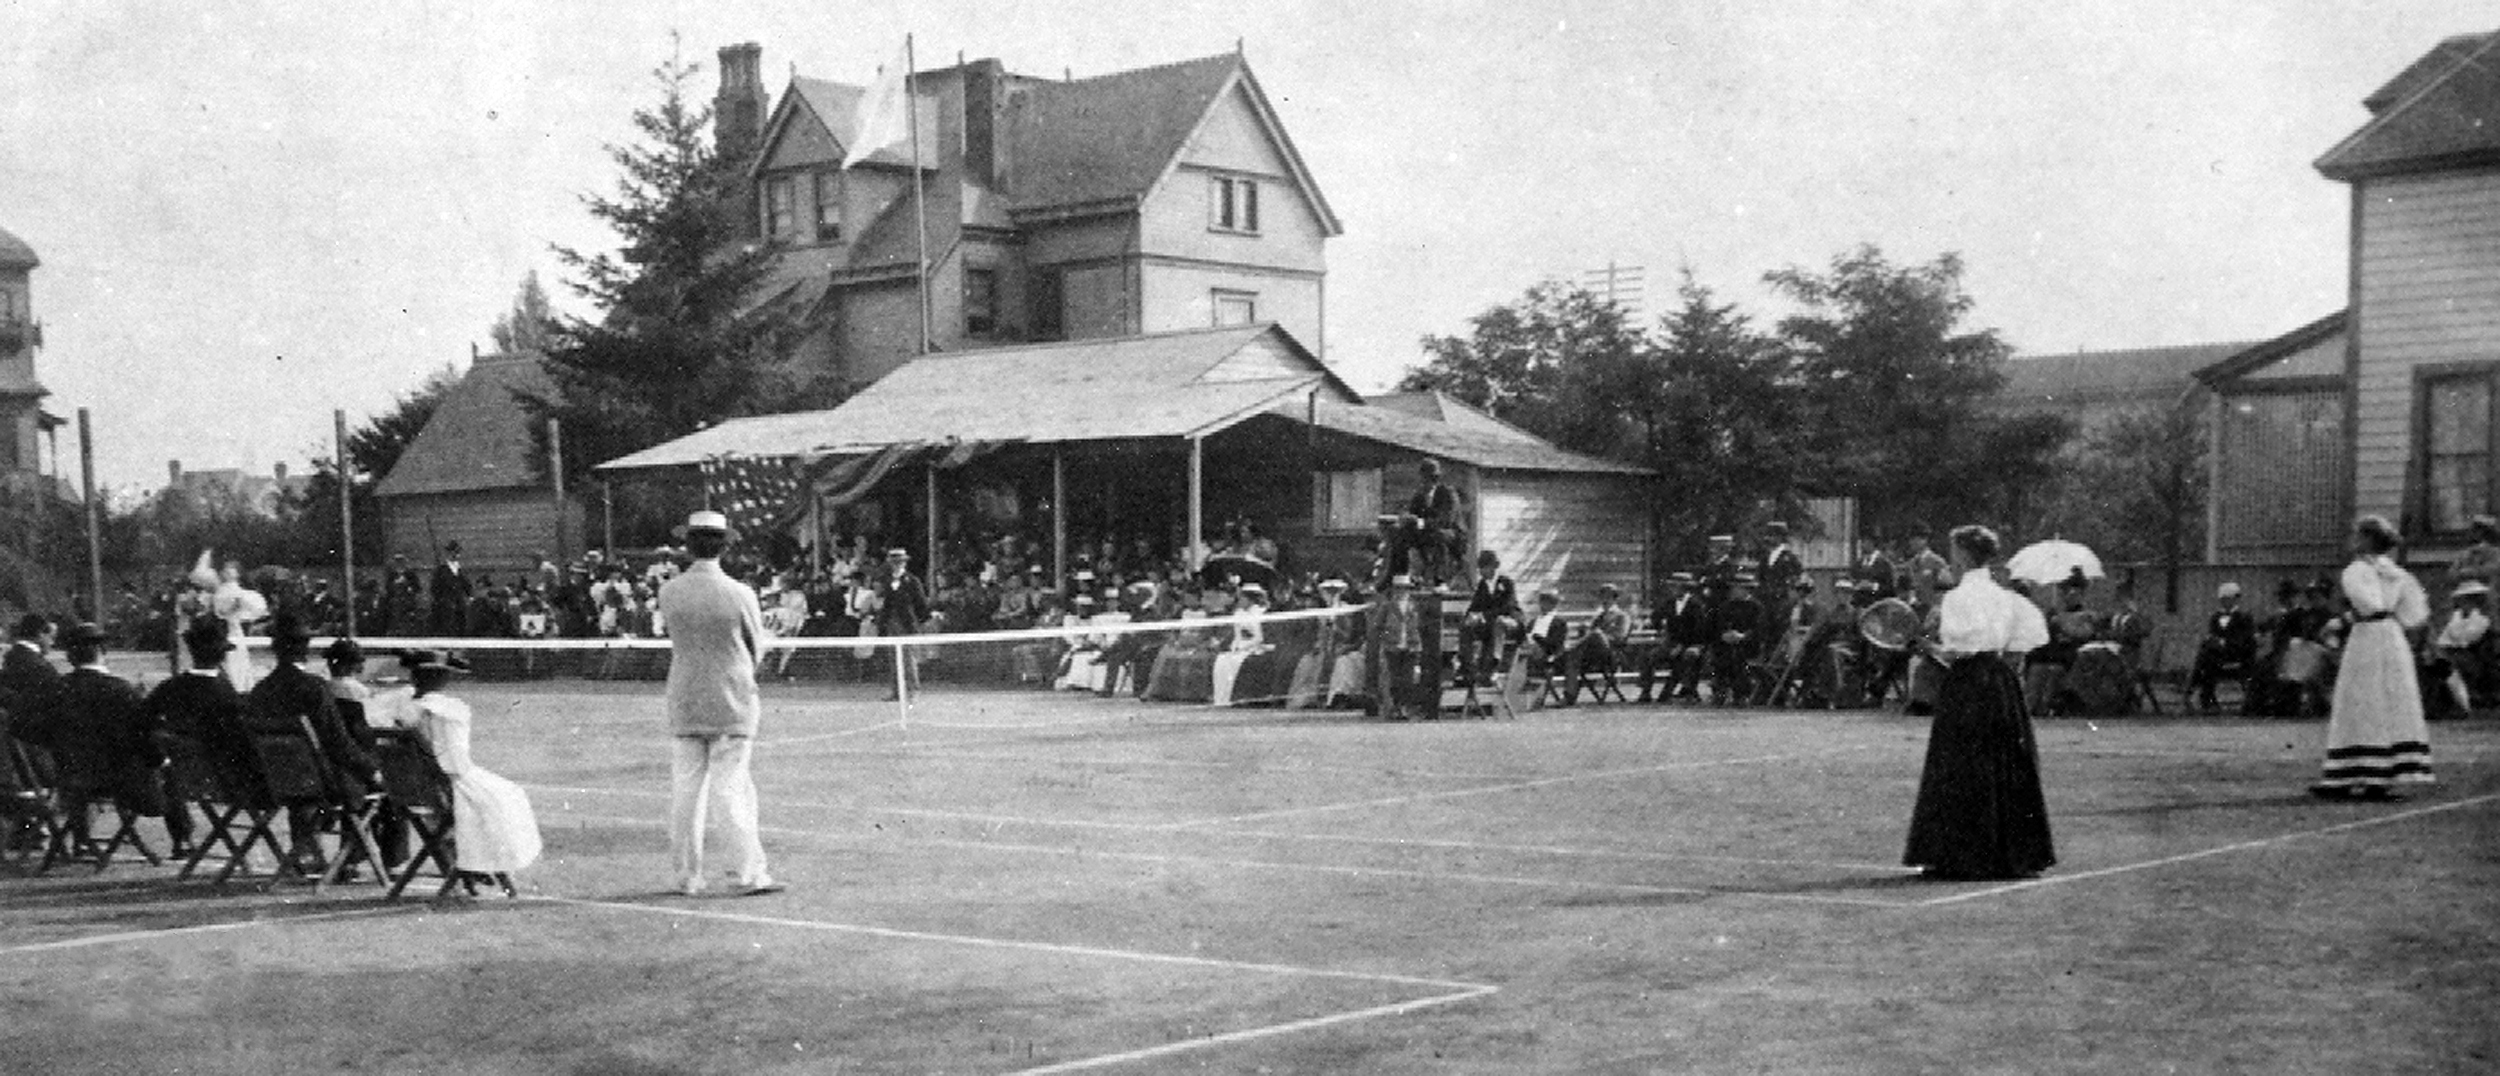 The Washington State Open at the original location of the Olympic Tennis Club on Madison Street and Minor Avenue in 1895.